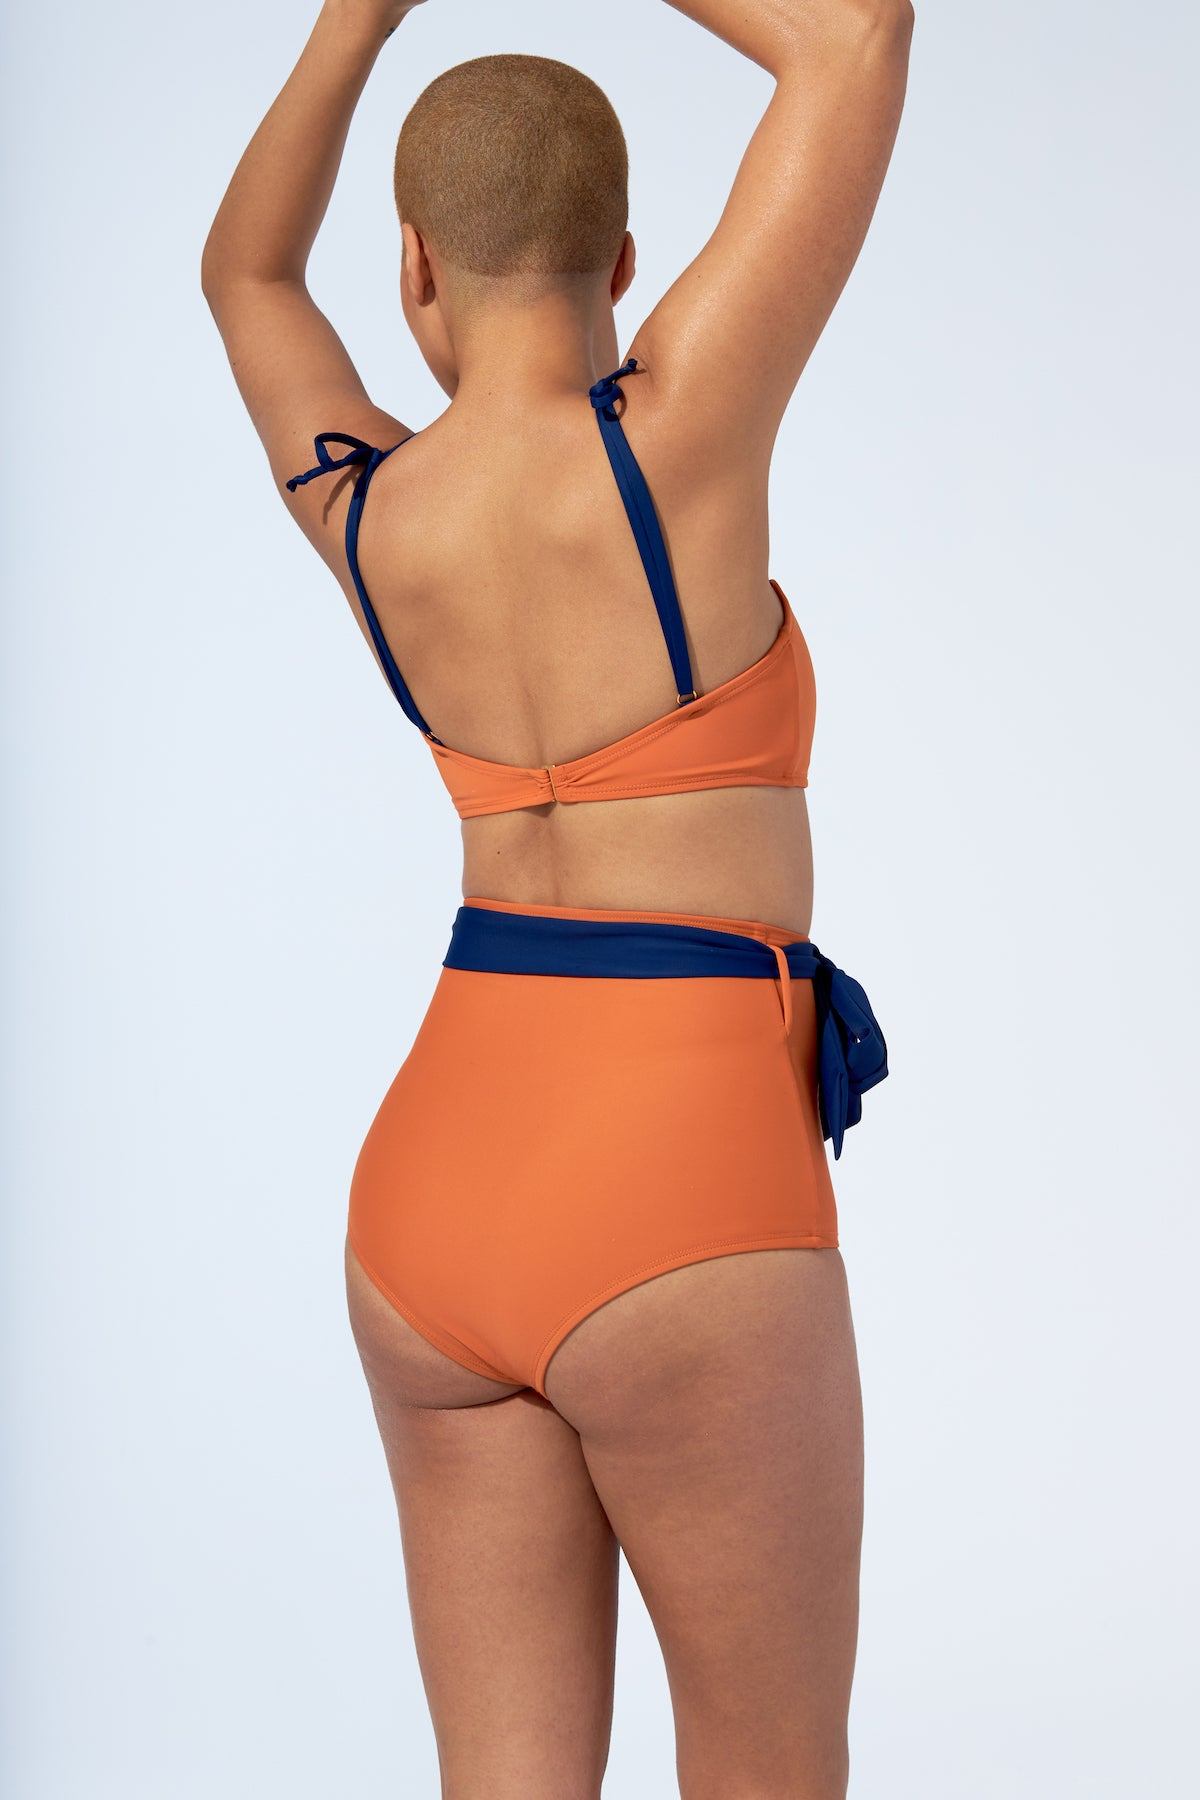 Orange and navy blue bikini set. Bandeau top and high waist retro bottom with belt swimsuit.